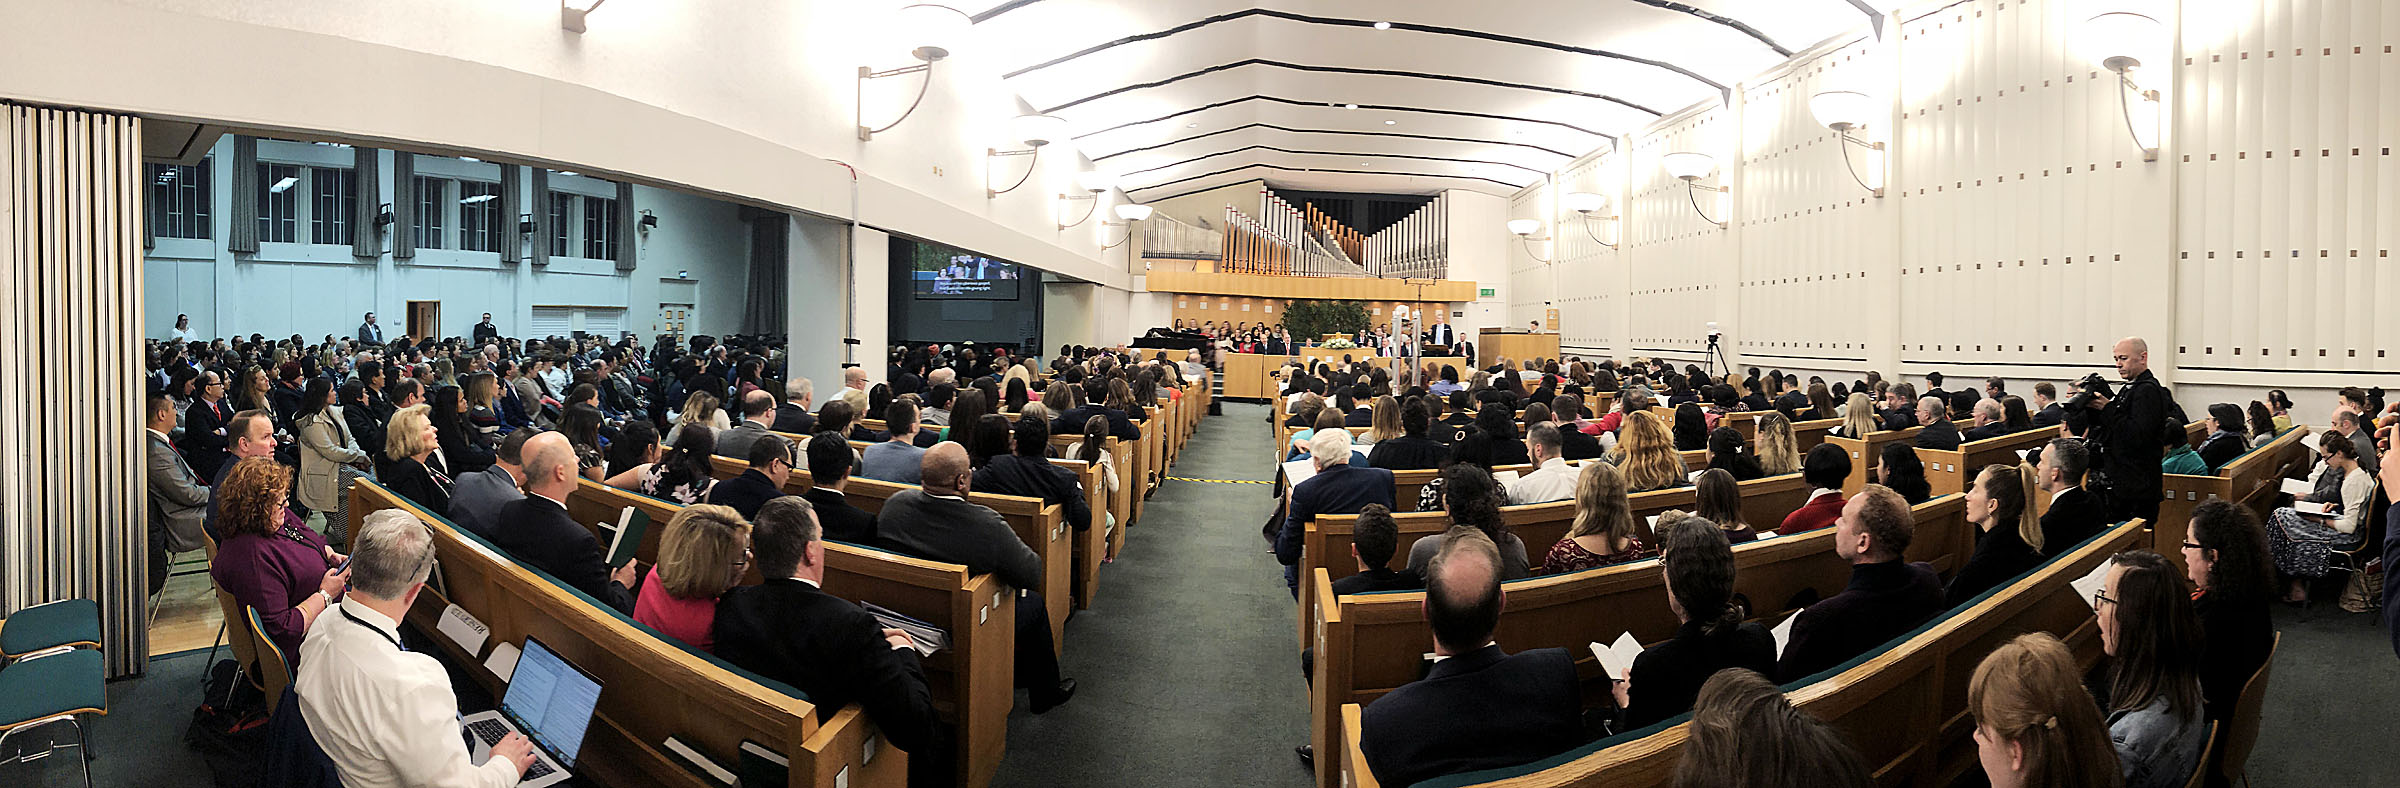 Members of the congregation sing at the end of a meeting with President Russell M. Nelson at the Hyde Park Chapel in London on Thursday, April 12, 2018.